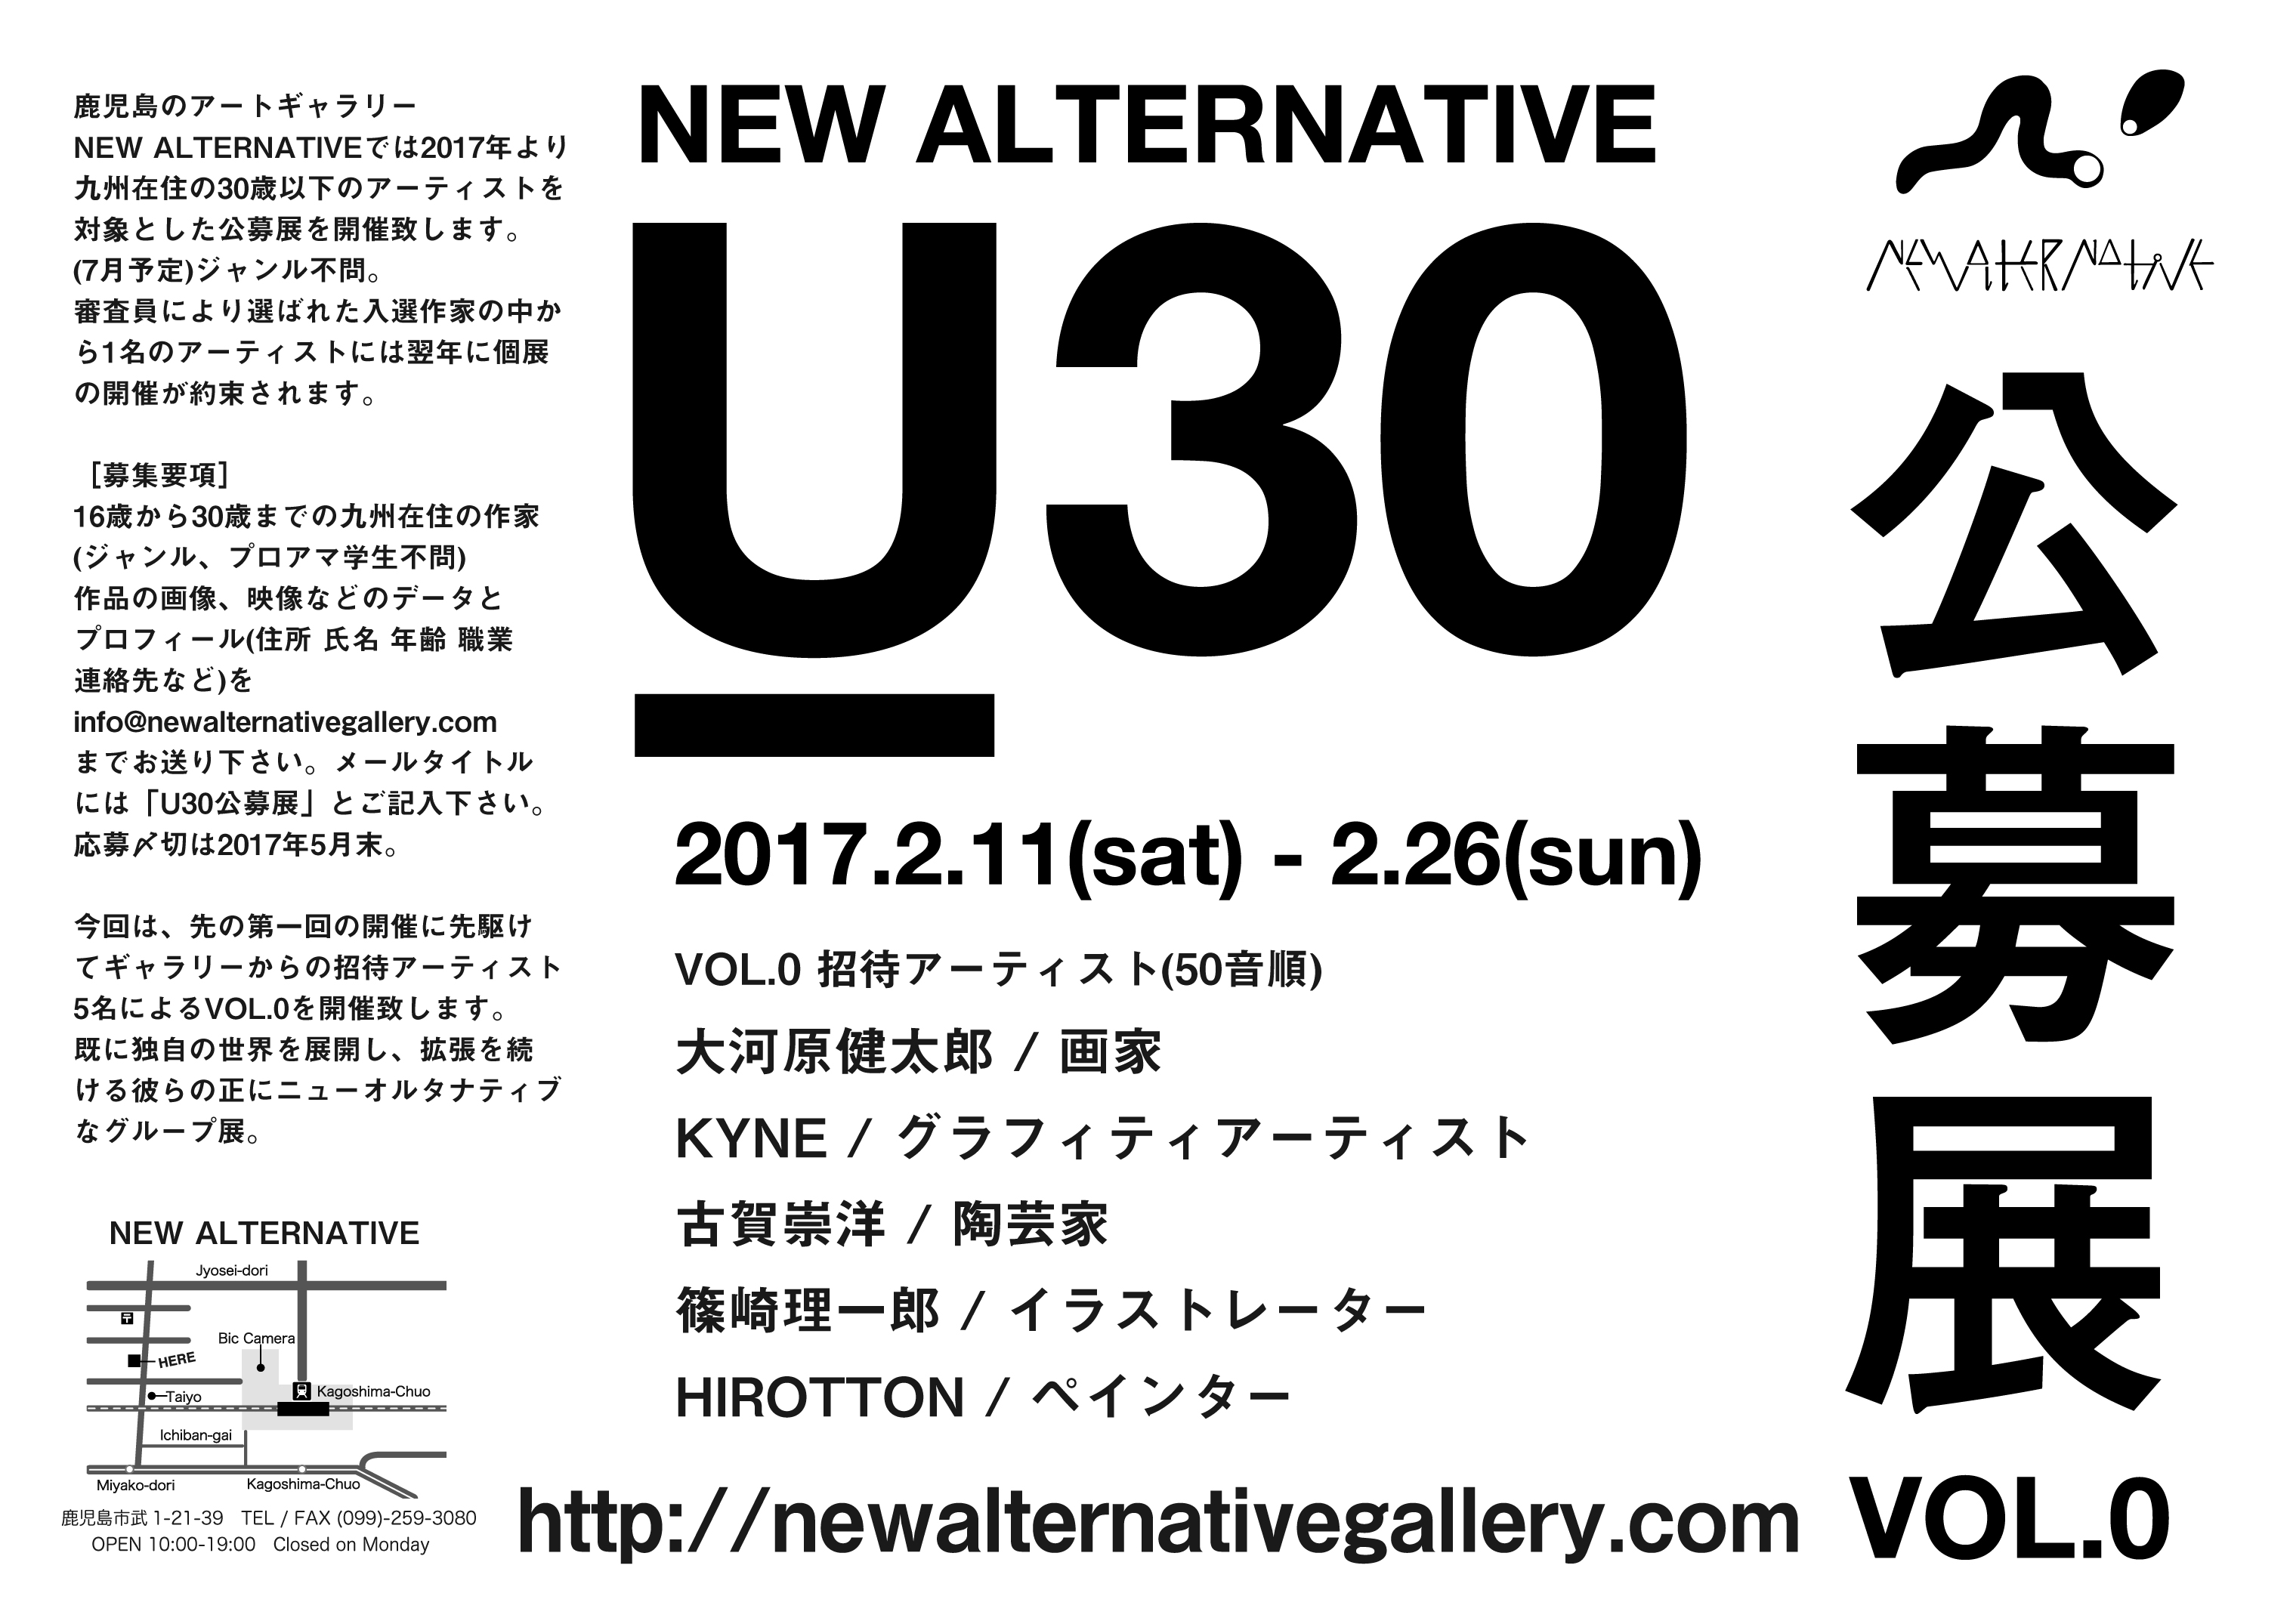 NEW ALTERNATIVE 【U30 公募展】VOL.0